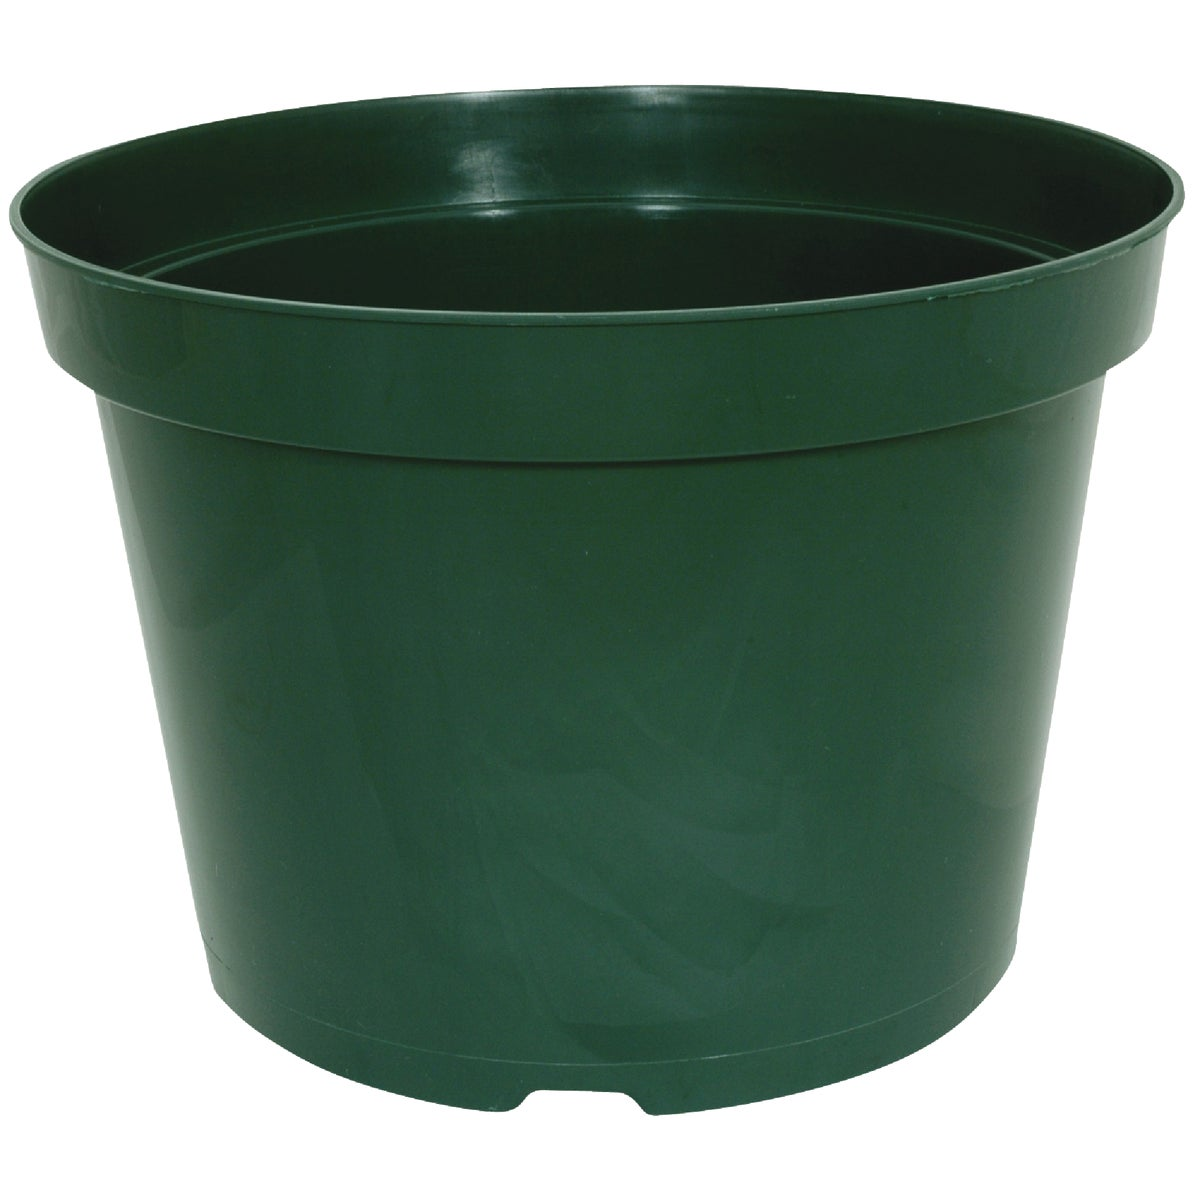 "6"" GREEN GROWER POT"